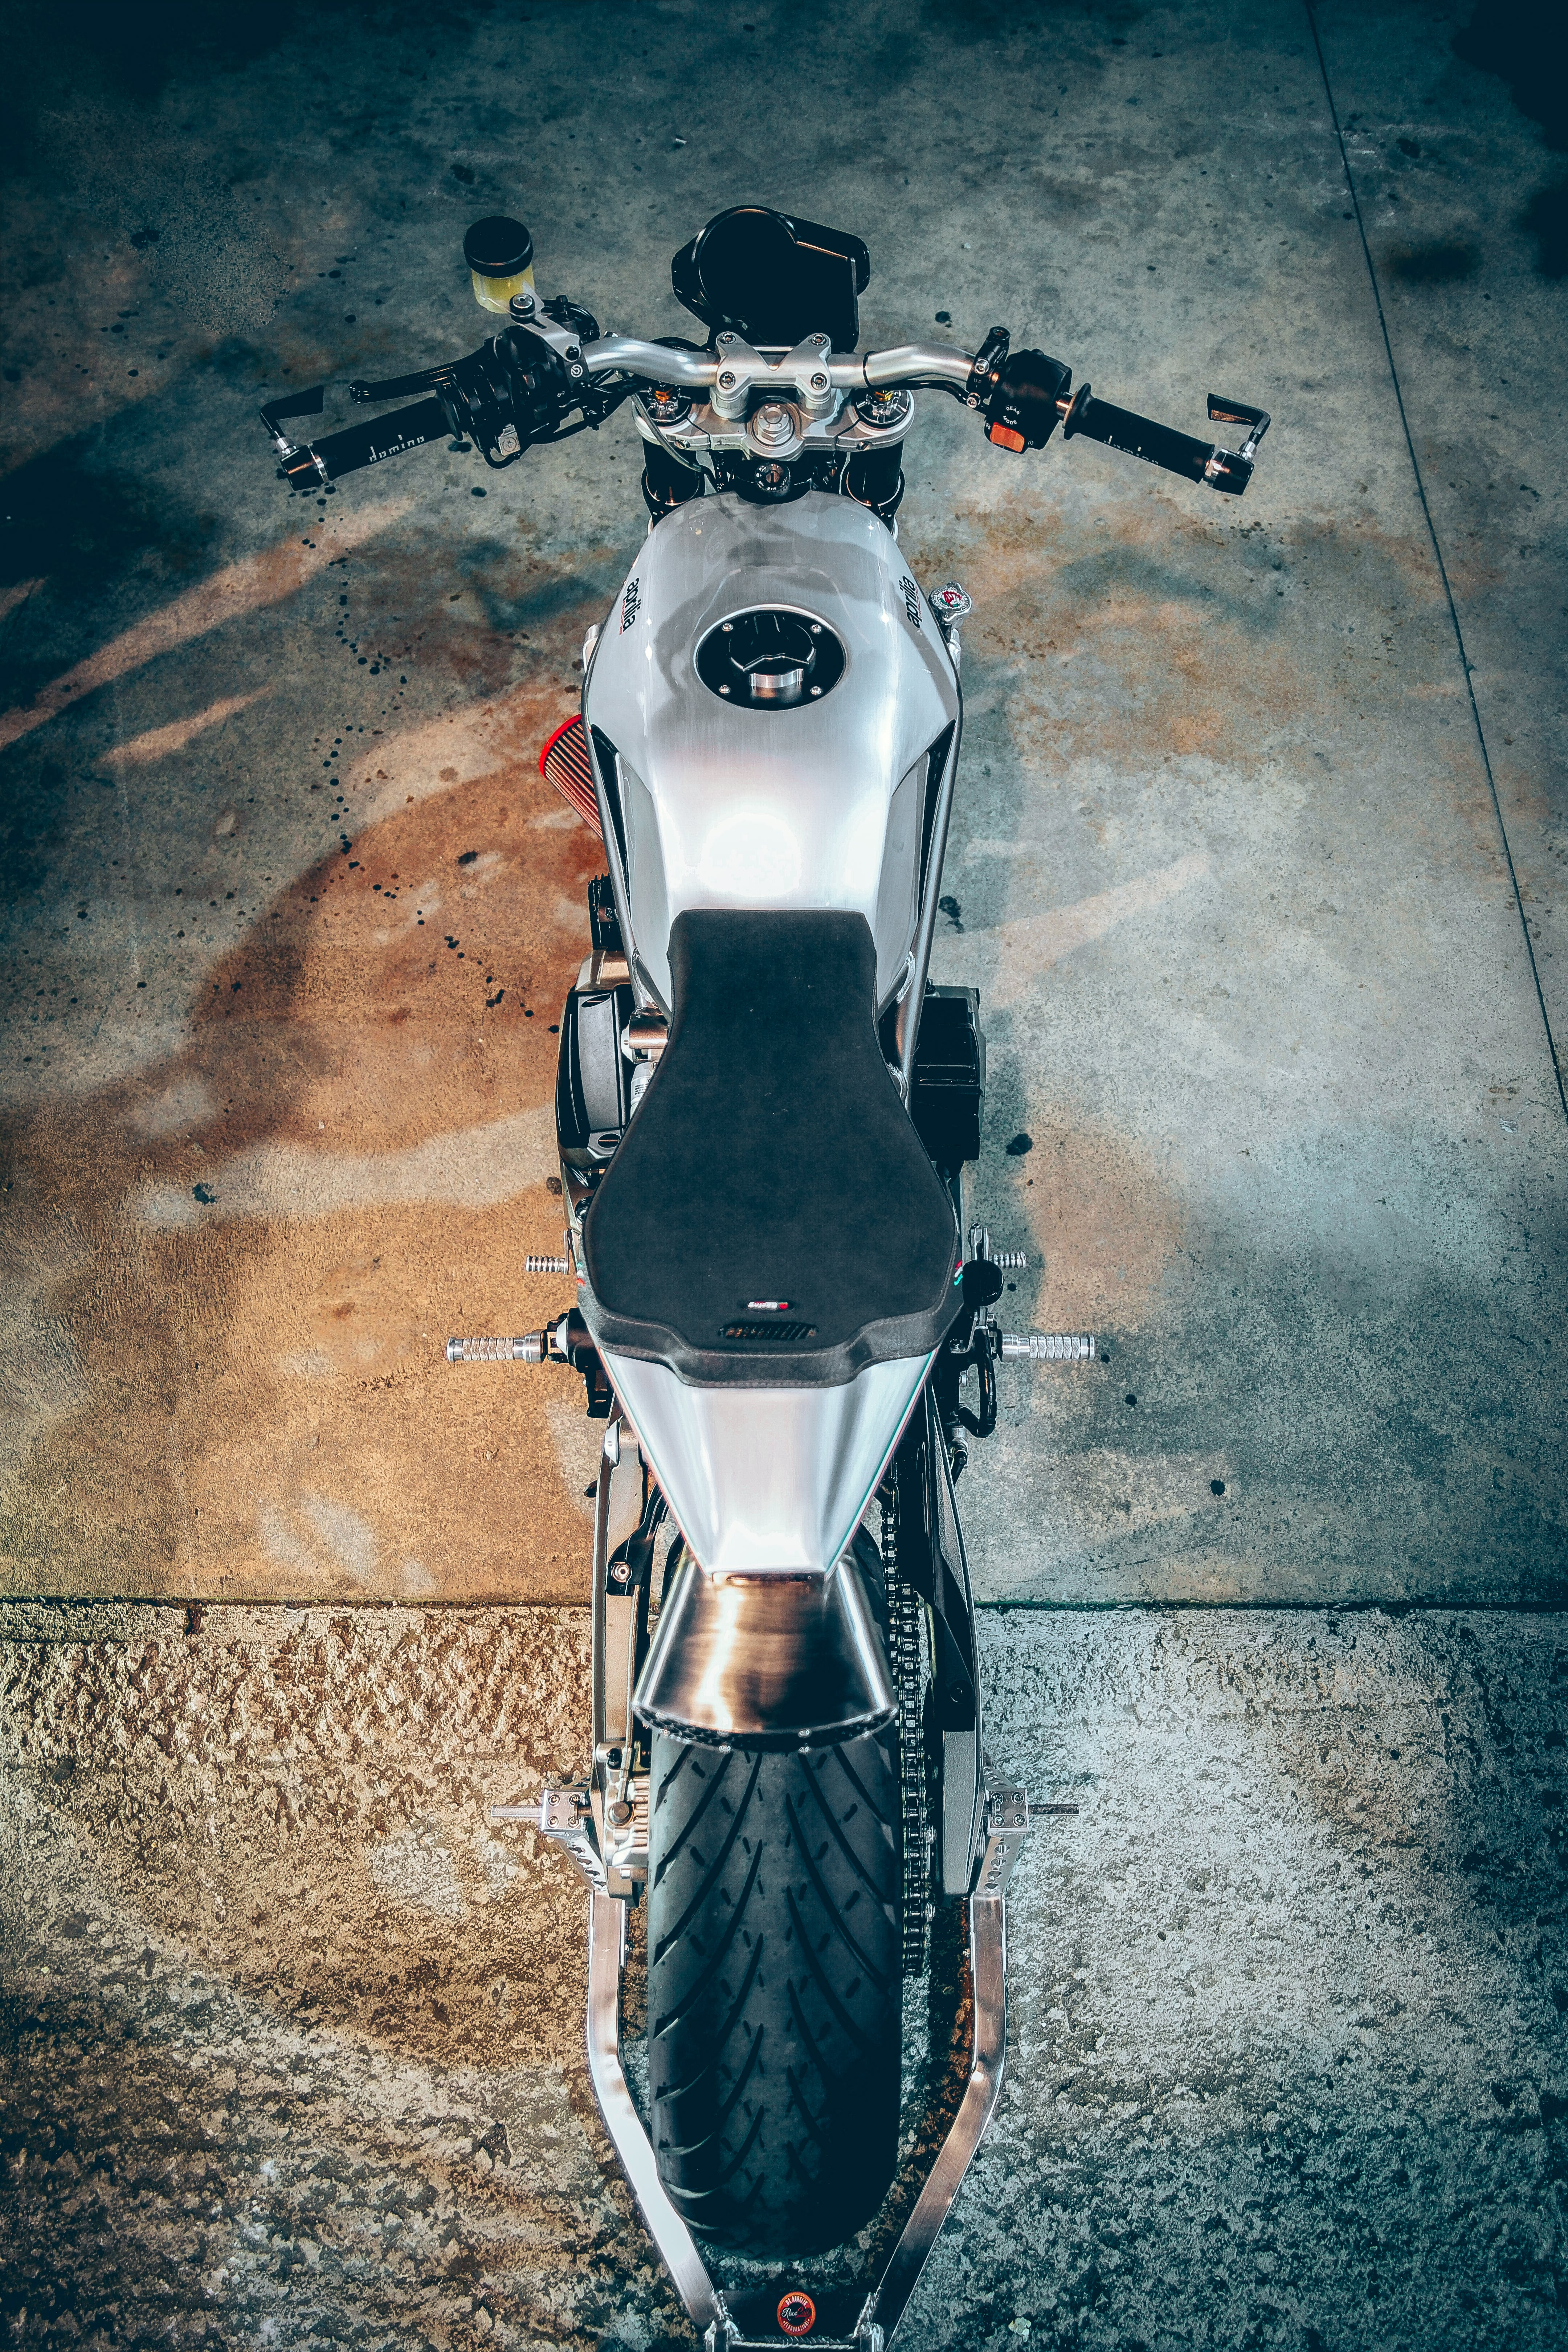 Black and Gray Naked Motorcycle